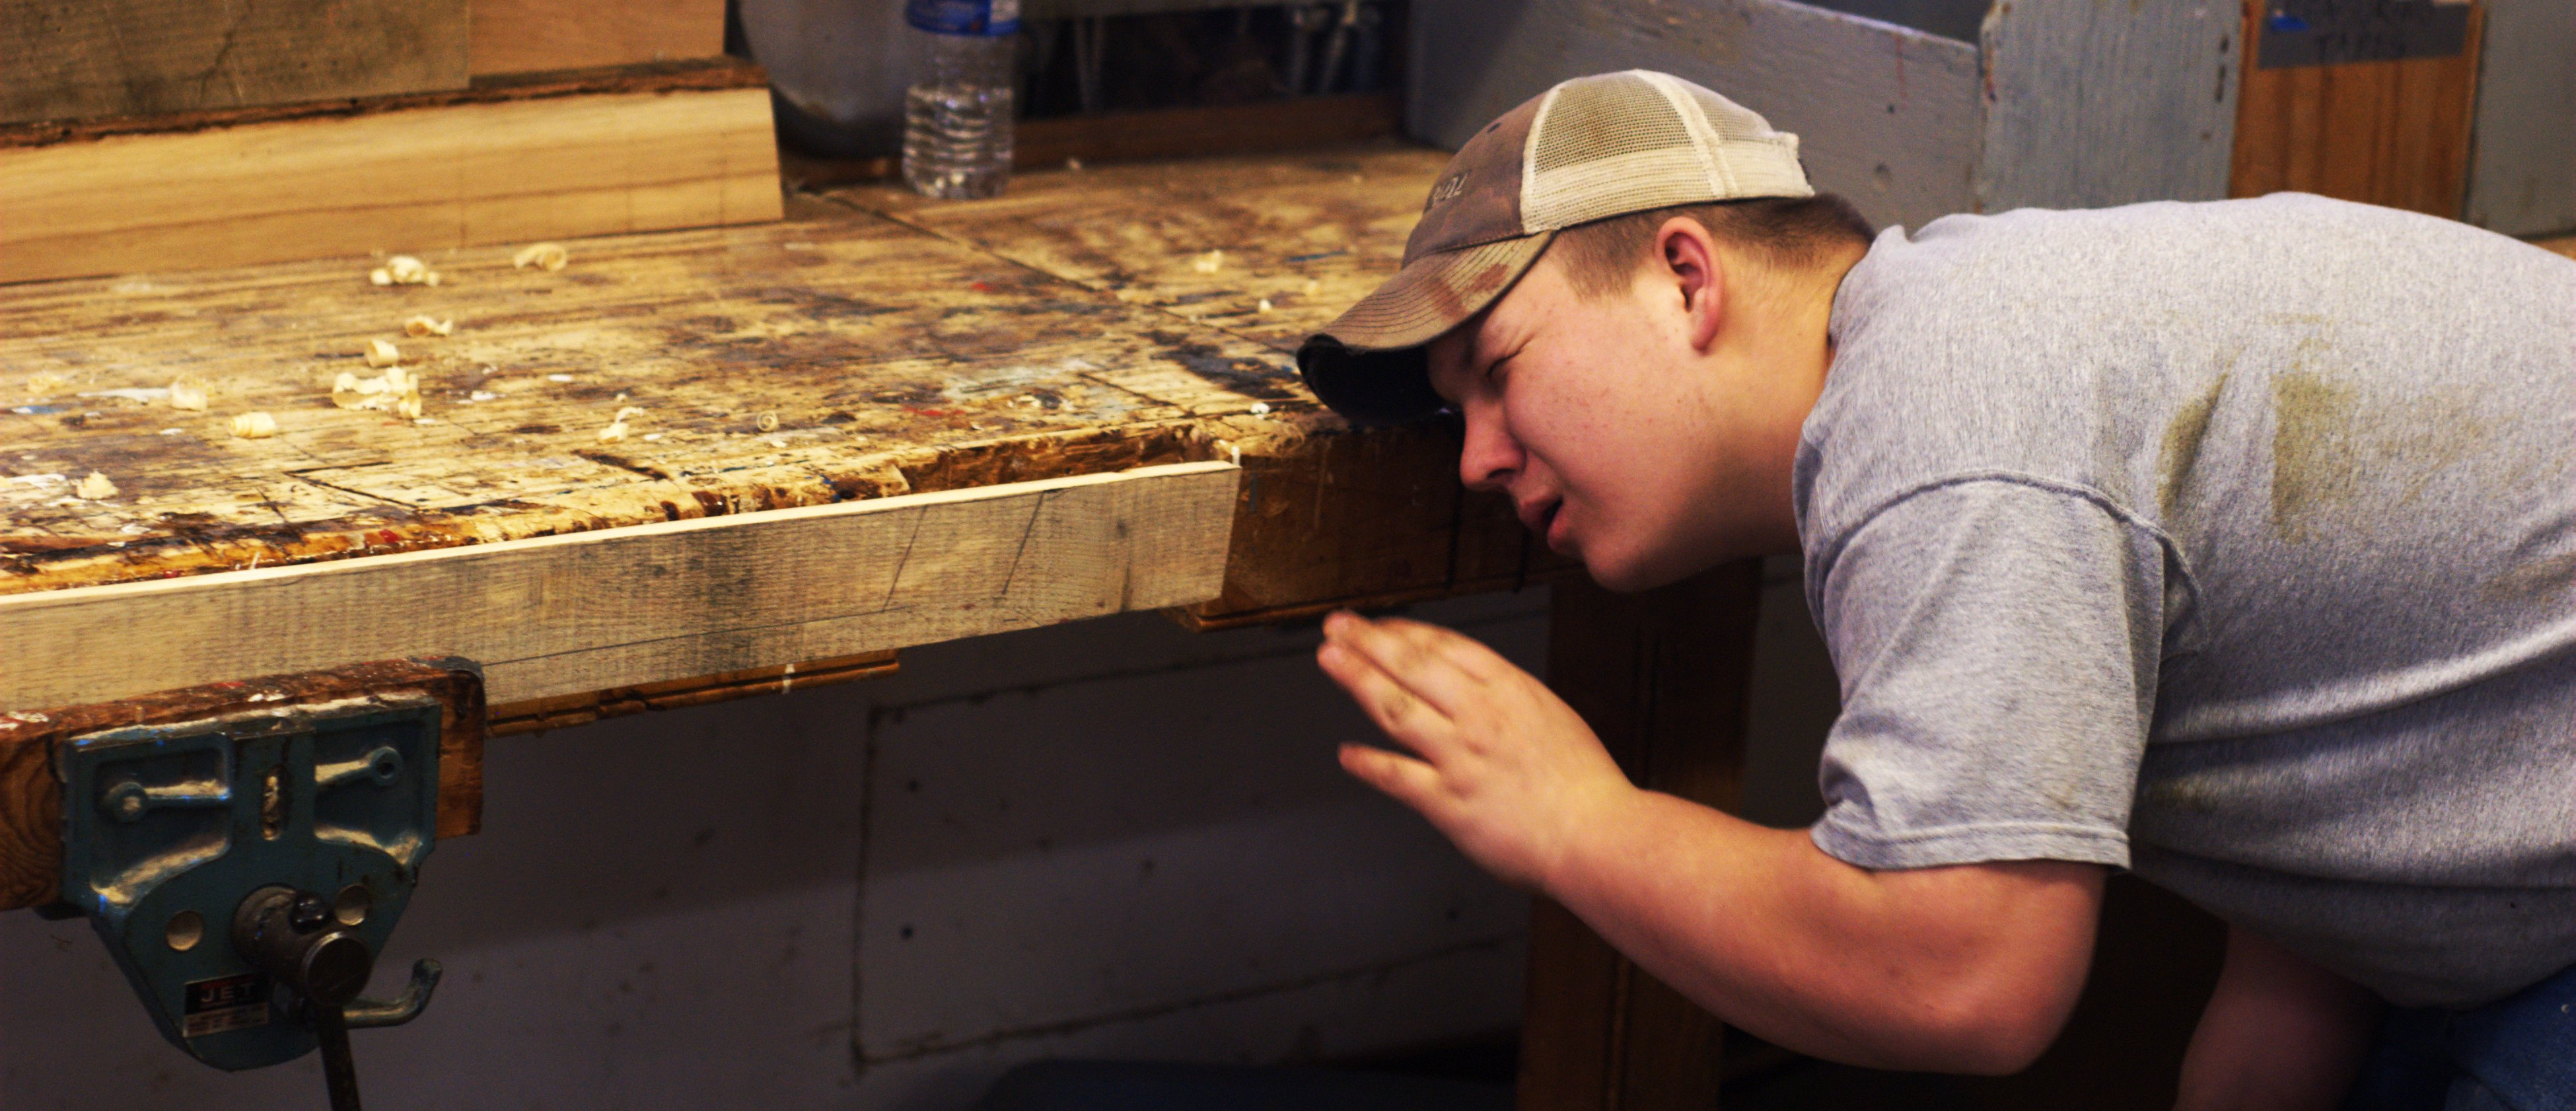 Nick ____ checking the edge of a plank for smoothness